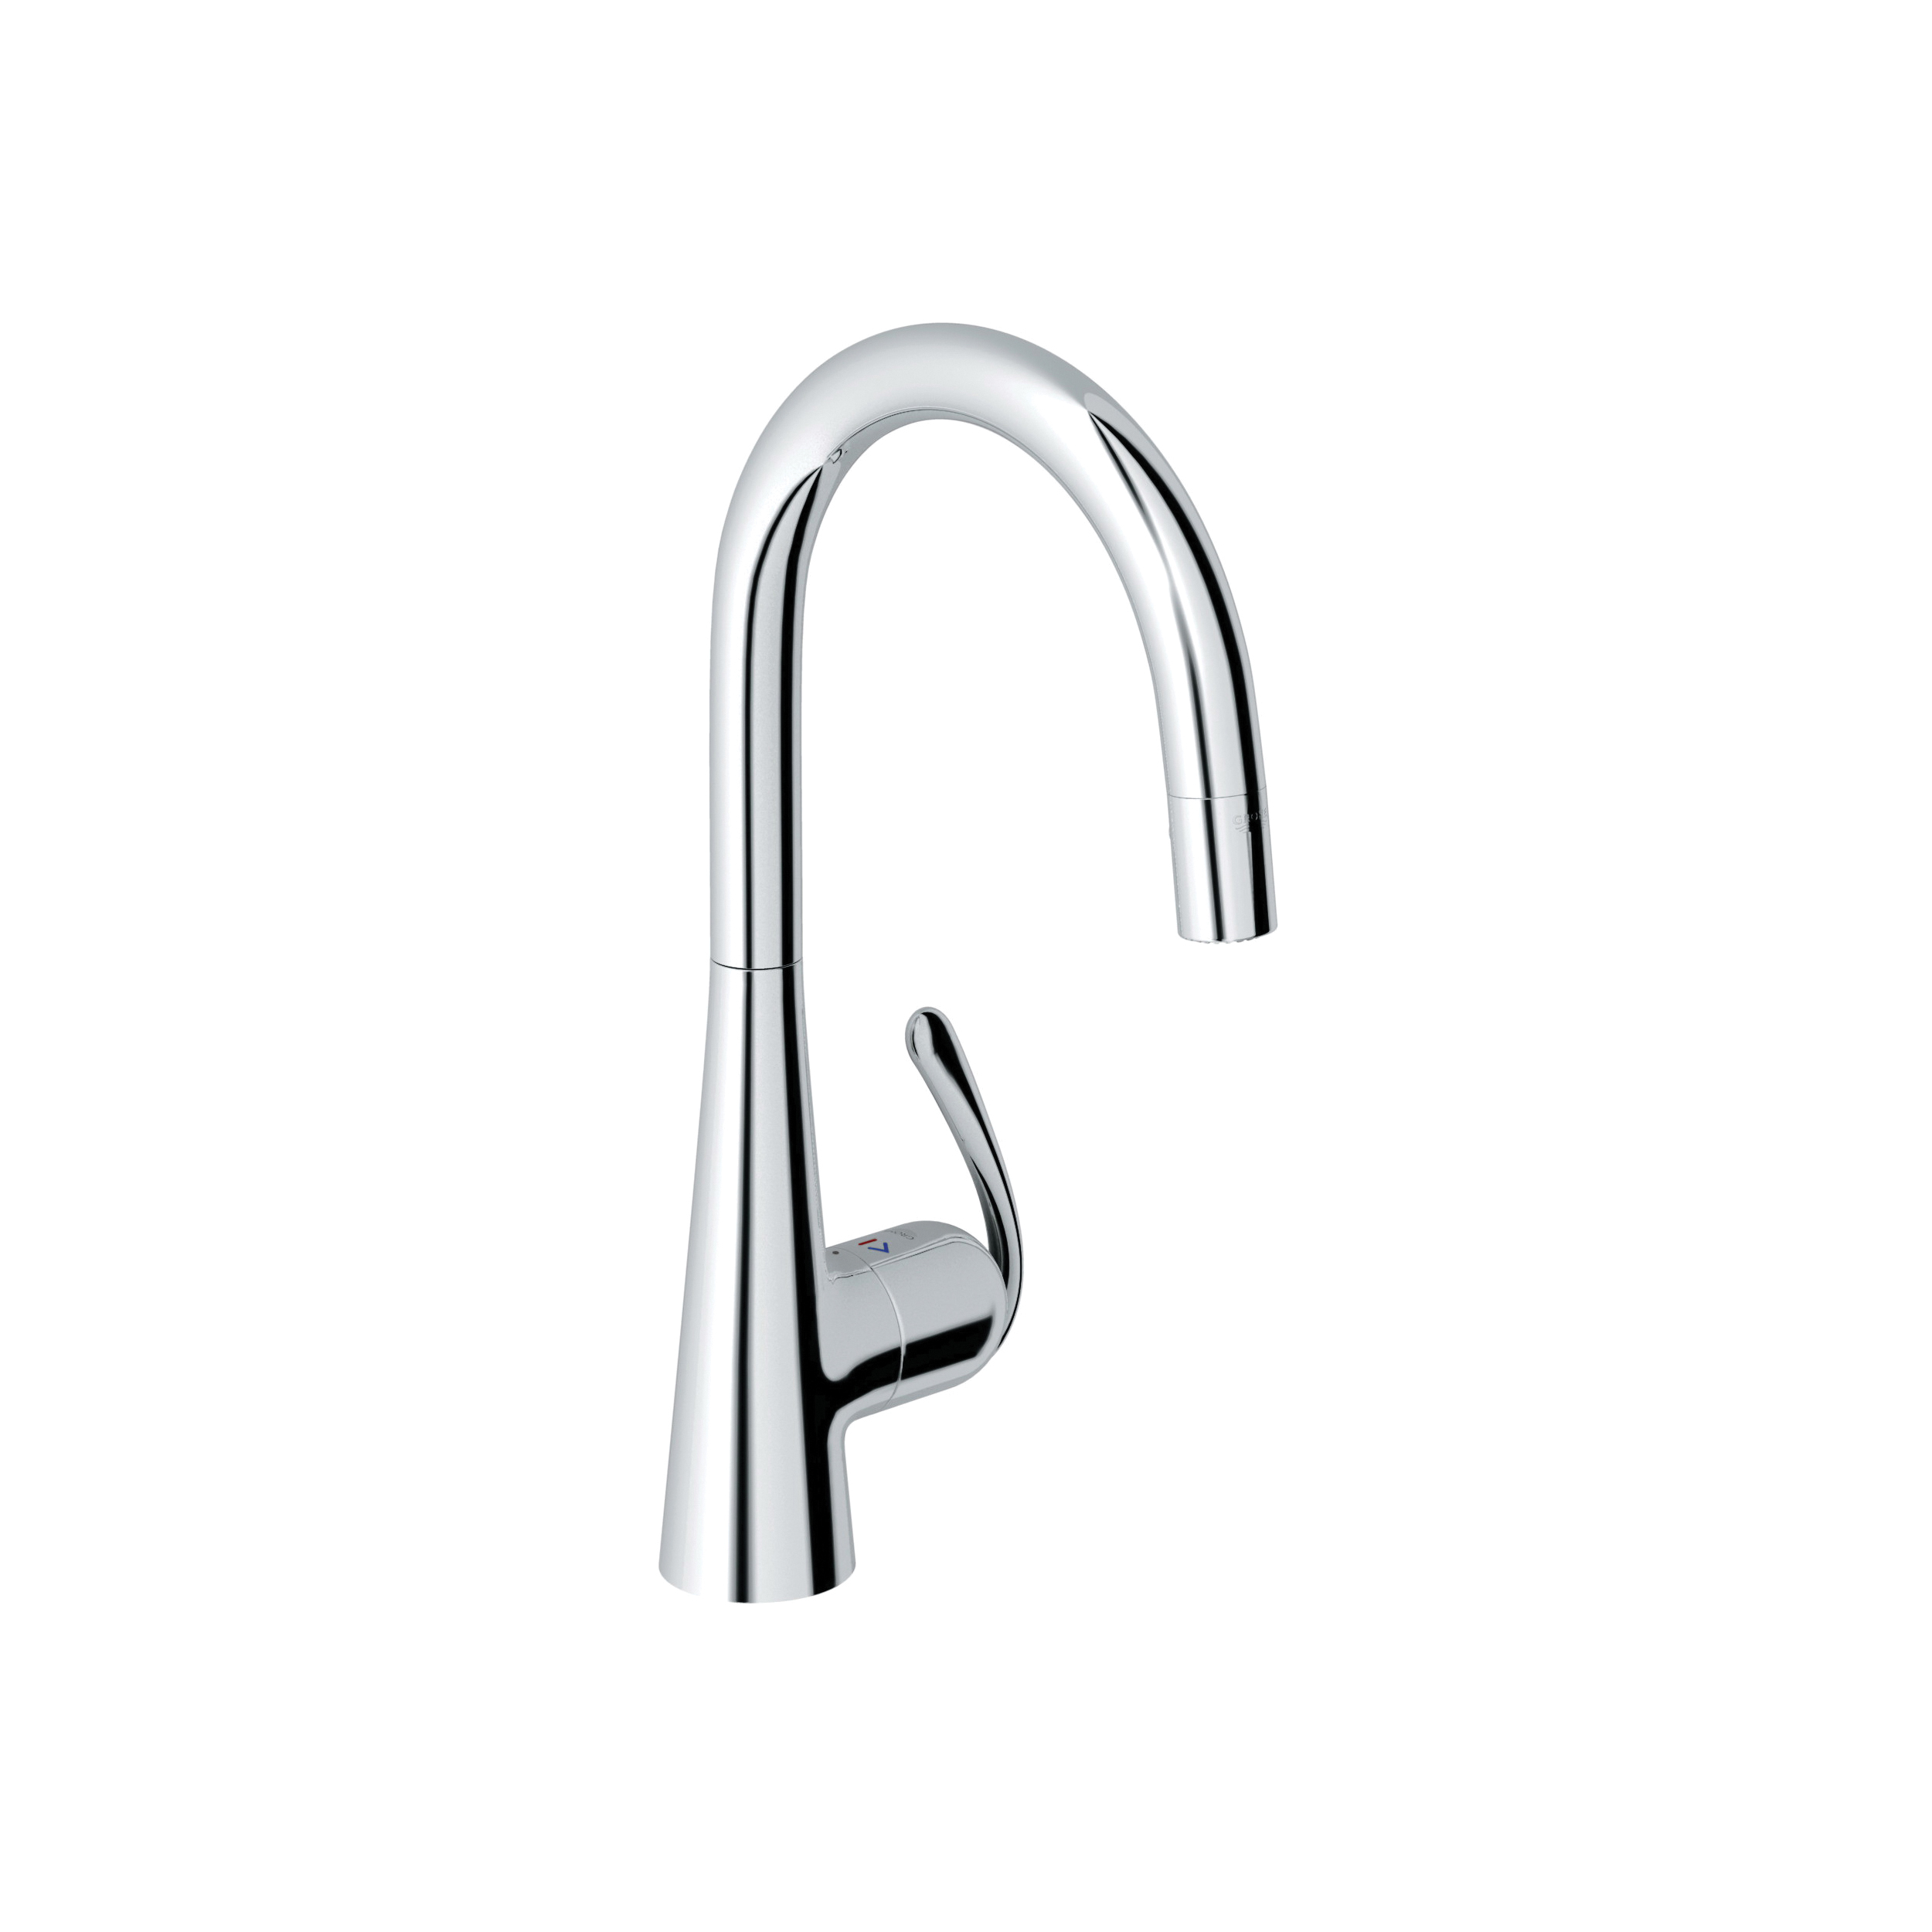 GROHE 32226000 Ladylux3 Pro Sink Mixer, 1.75 gpm, 1 Handle, Chrome Plated, Import